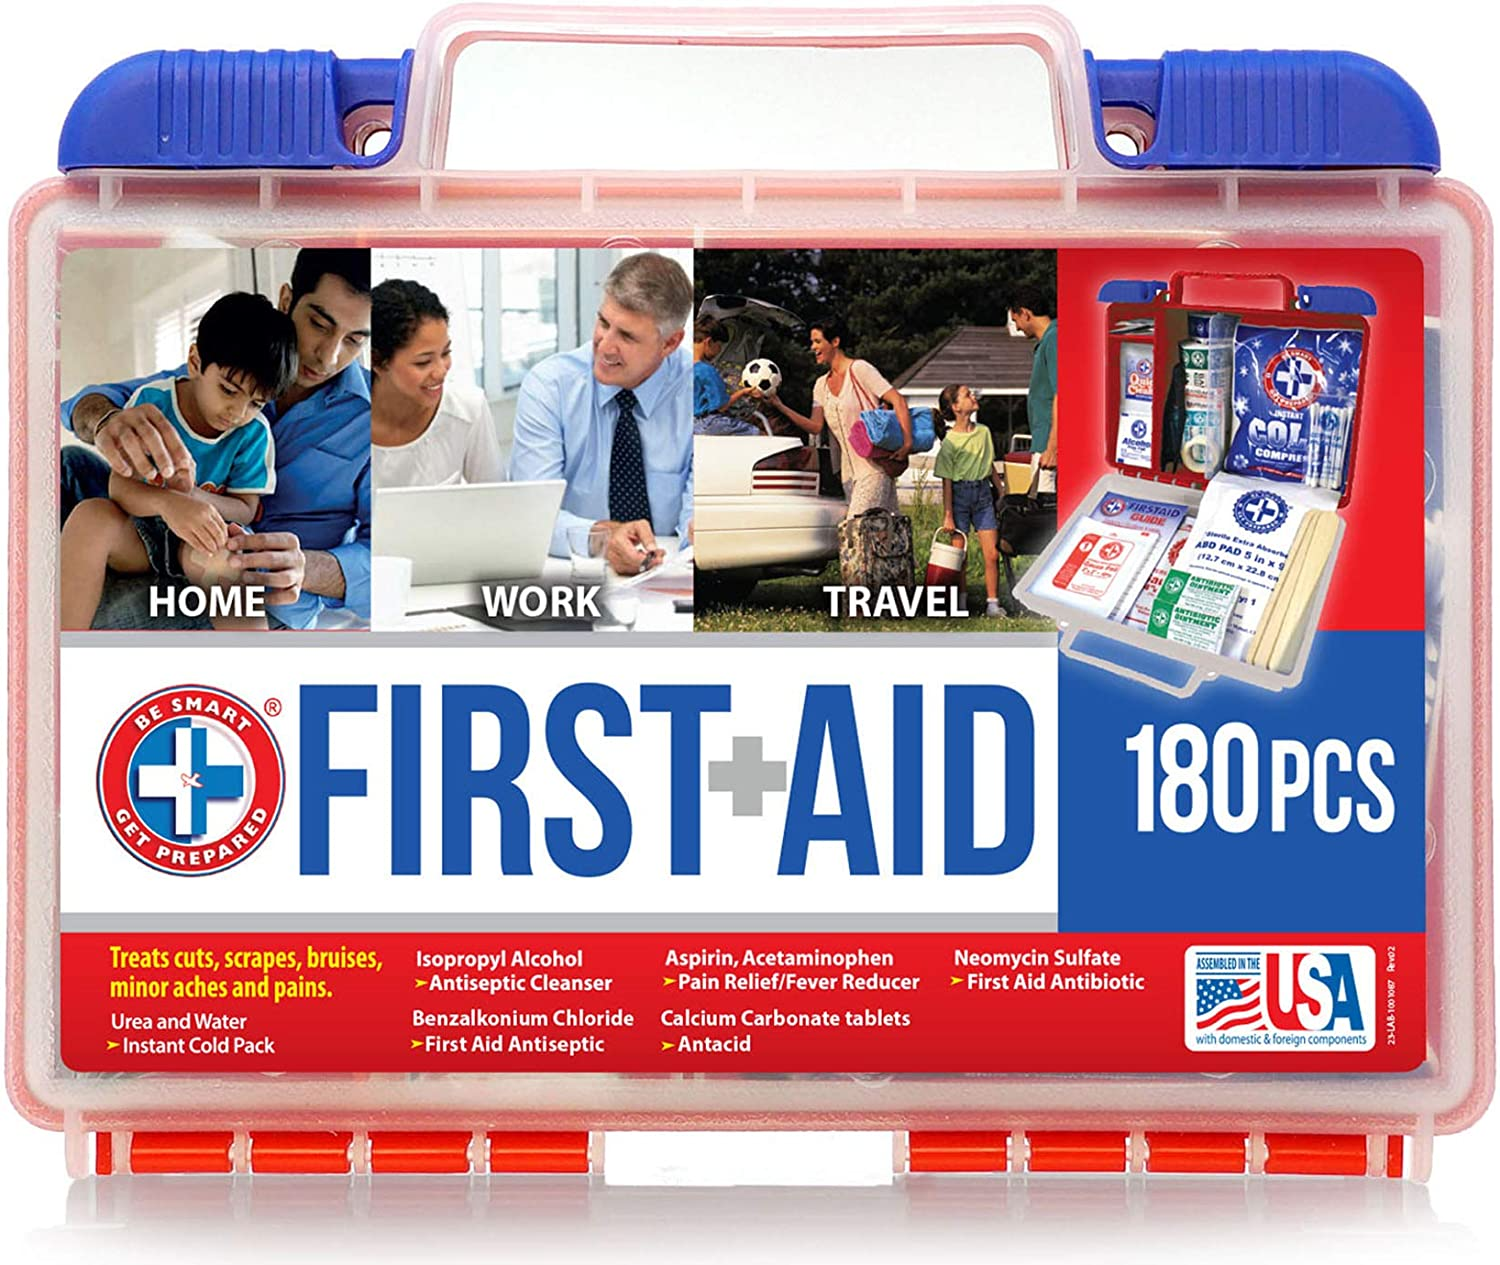 Be Smart Get Prepared 180 Piece First Aid Kit, 1.44 Pound